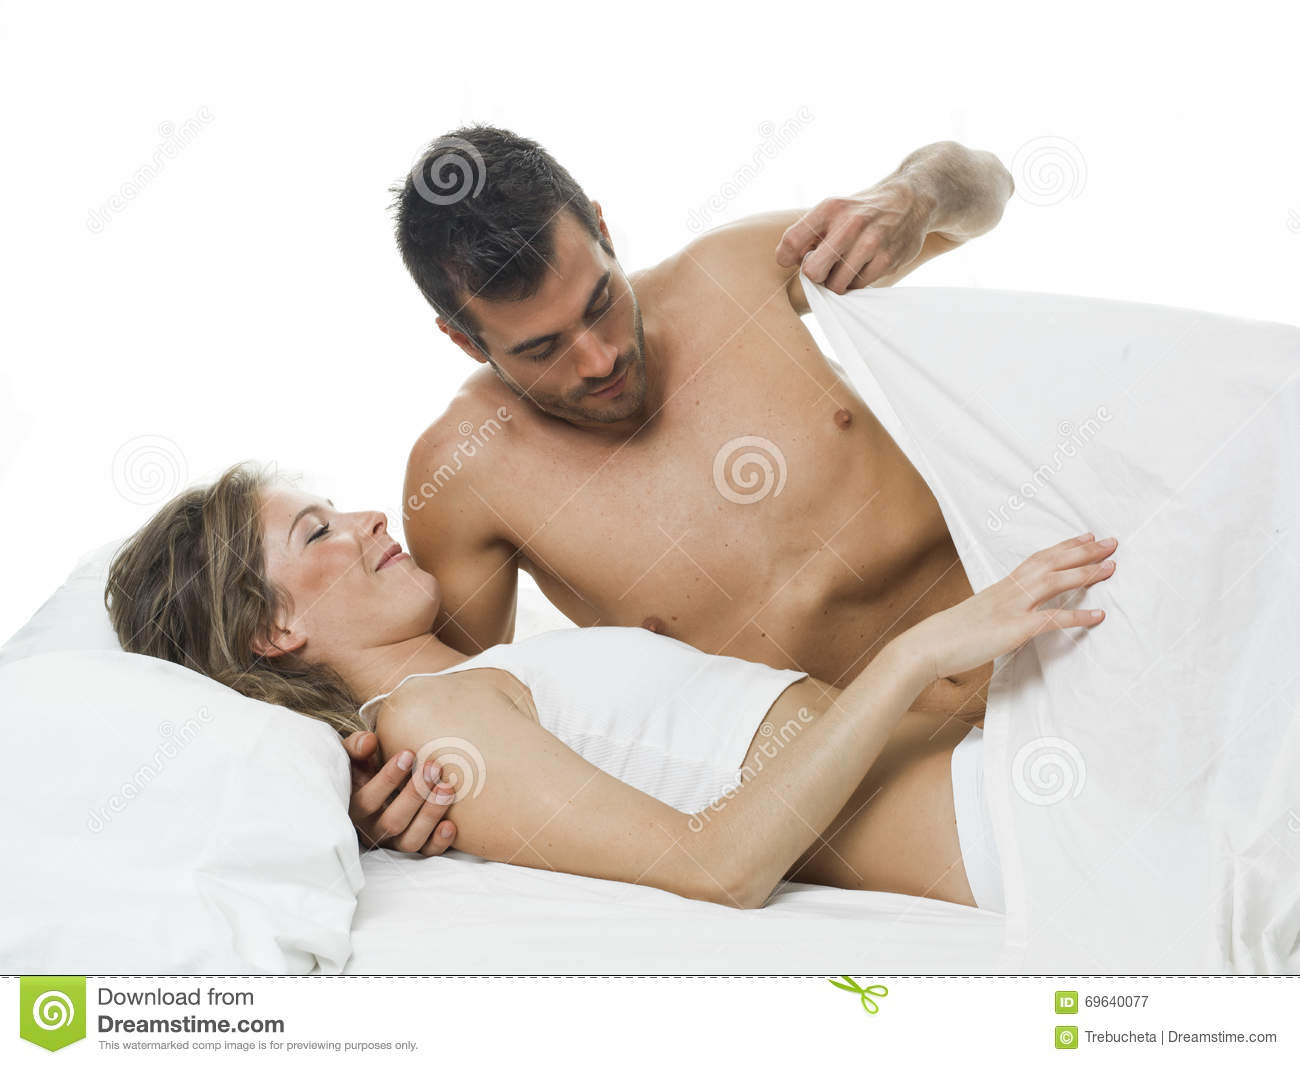 Funny sex pic download